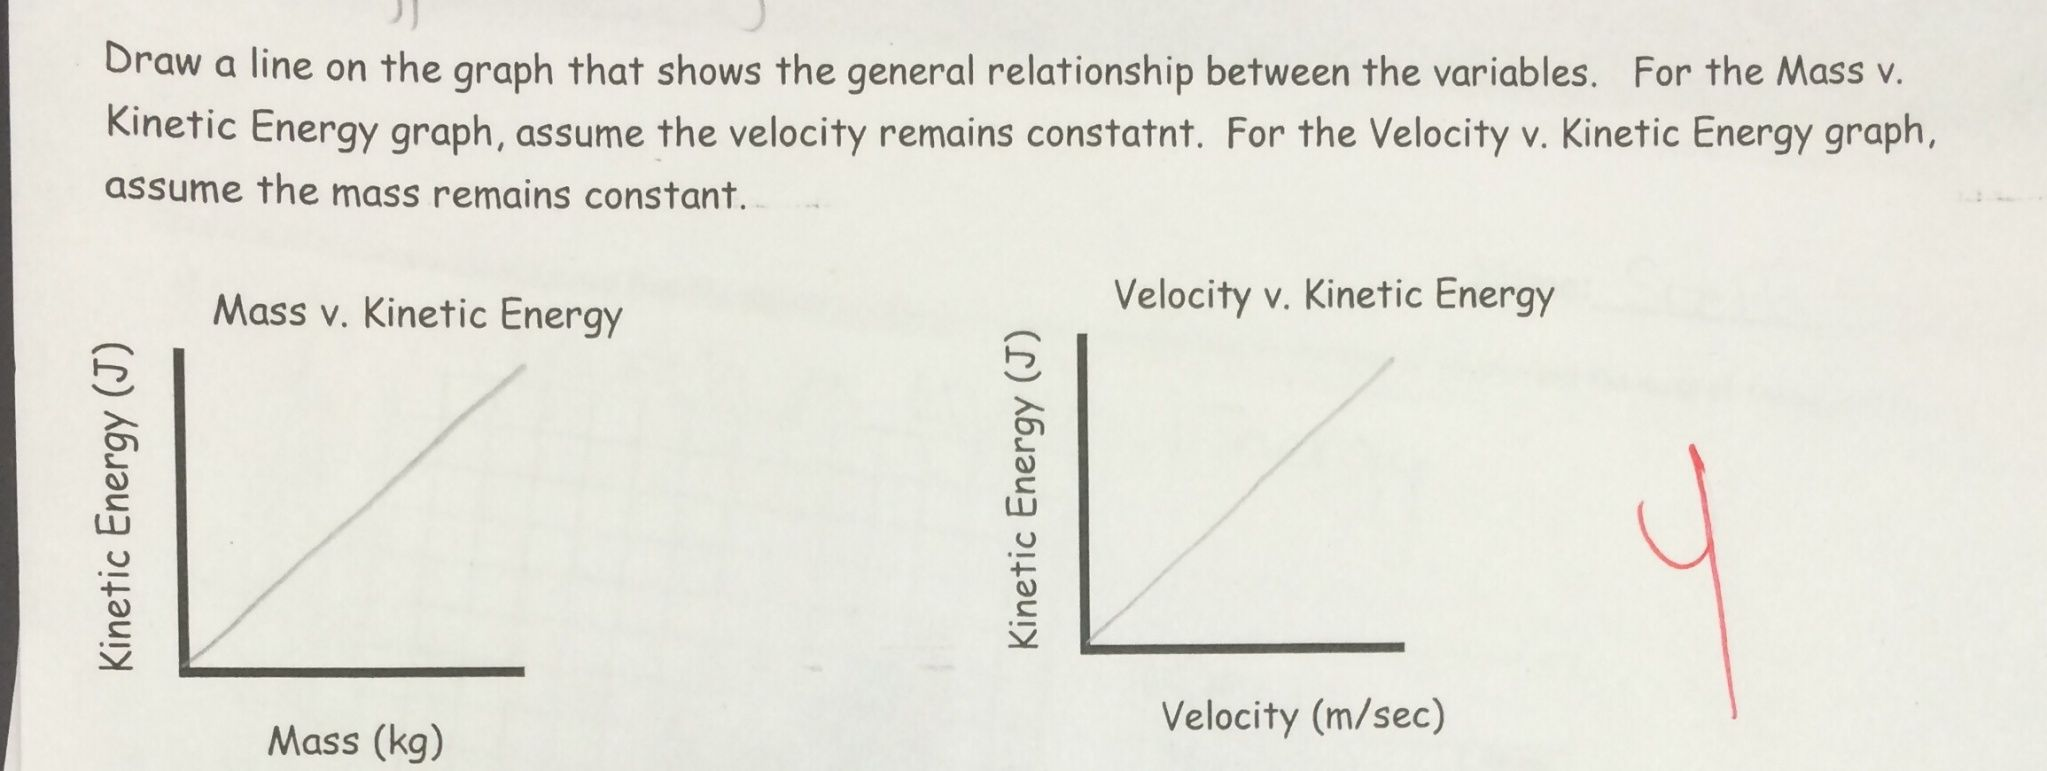 Kinetic And Potential Energy Lab Rotation Potential Energy Kinetic And Potential Energy Kinetic Energy